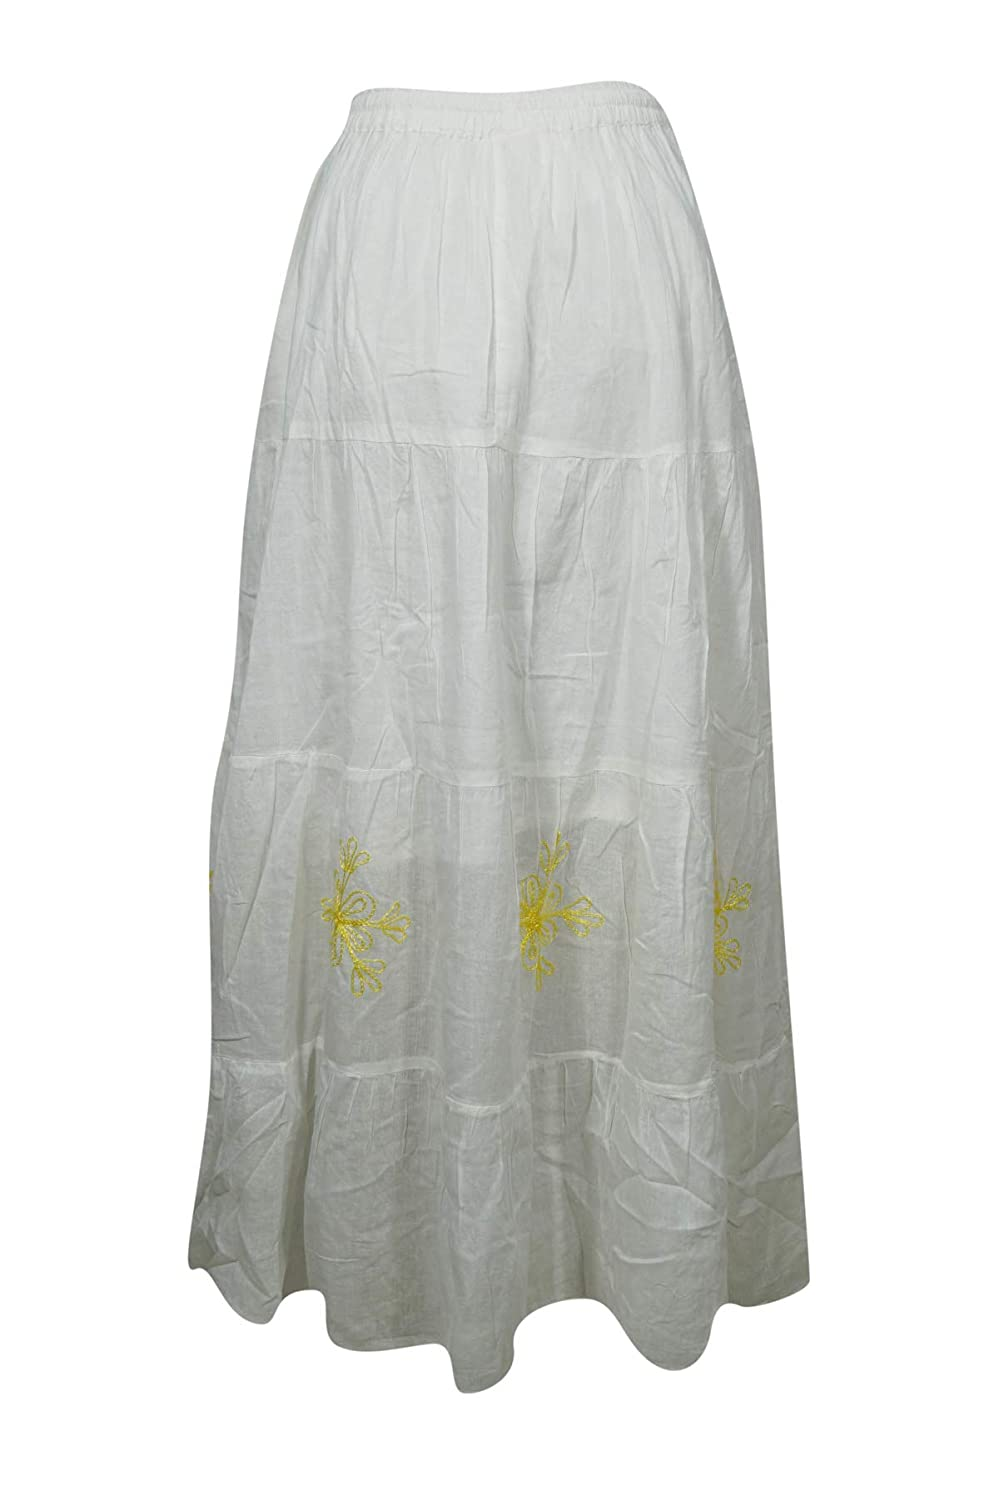 7cddb02eed Mogul Interior Women's Peasant Maxi Skirt White Cotton Frilly Hippie Long  Skirts M at Amazon Women's Clothing store: